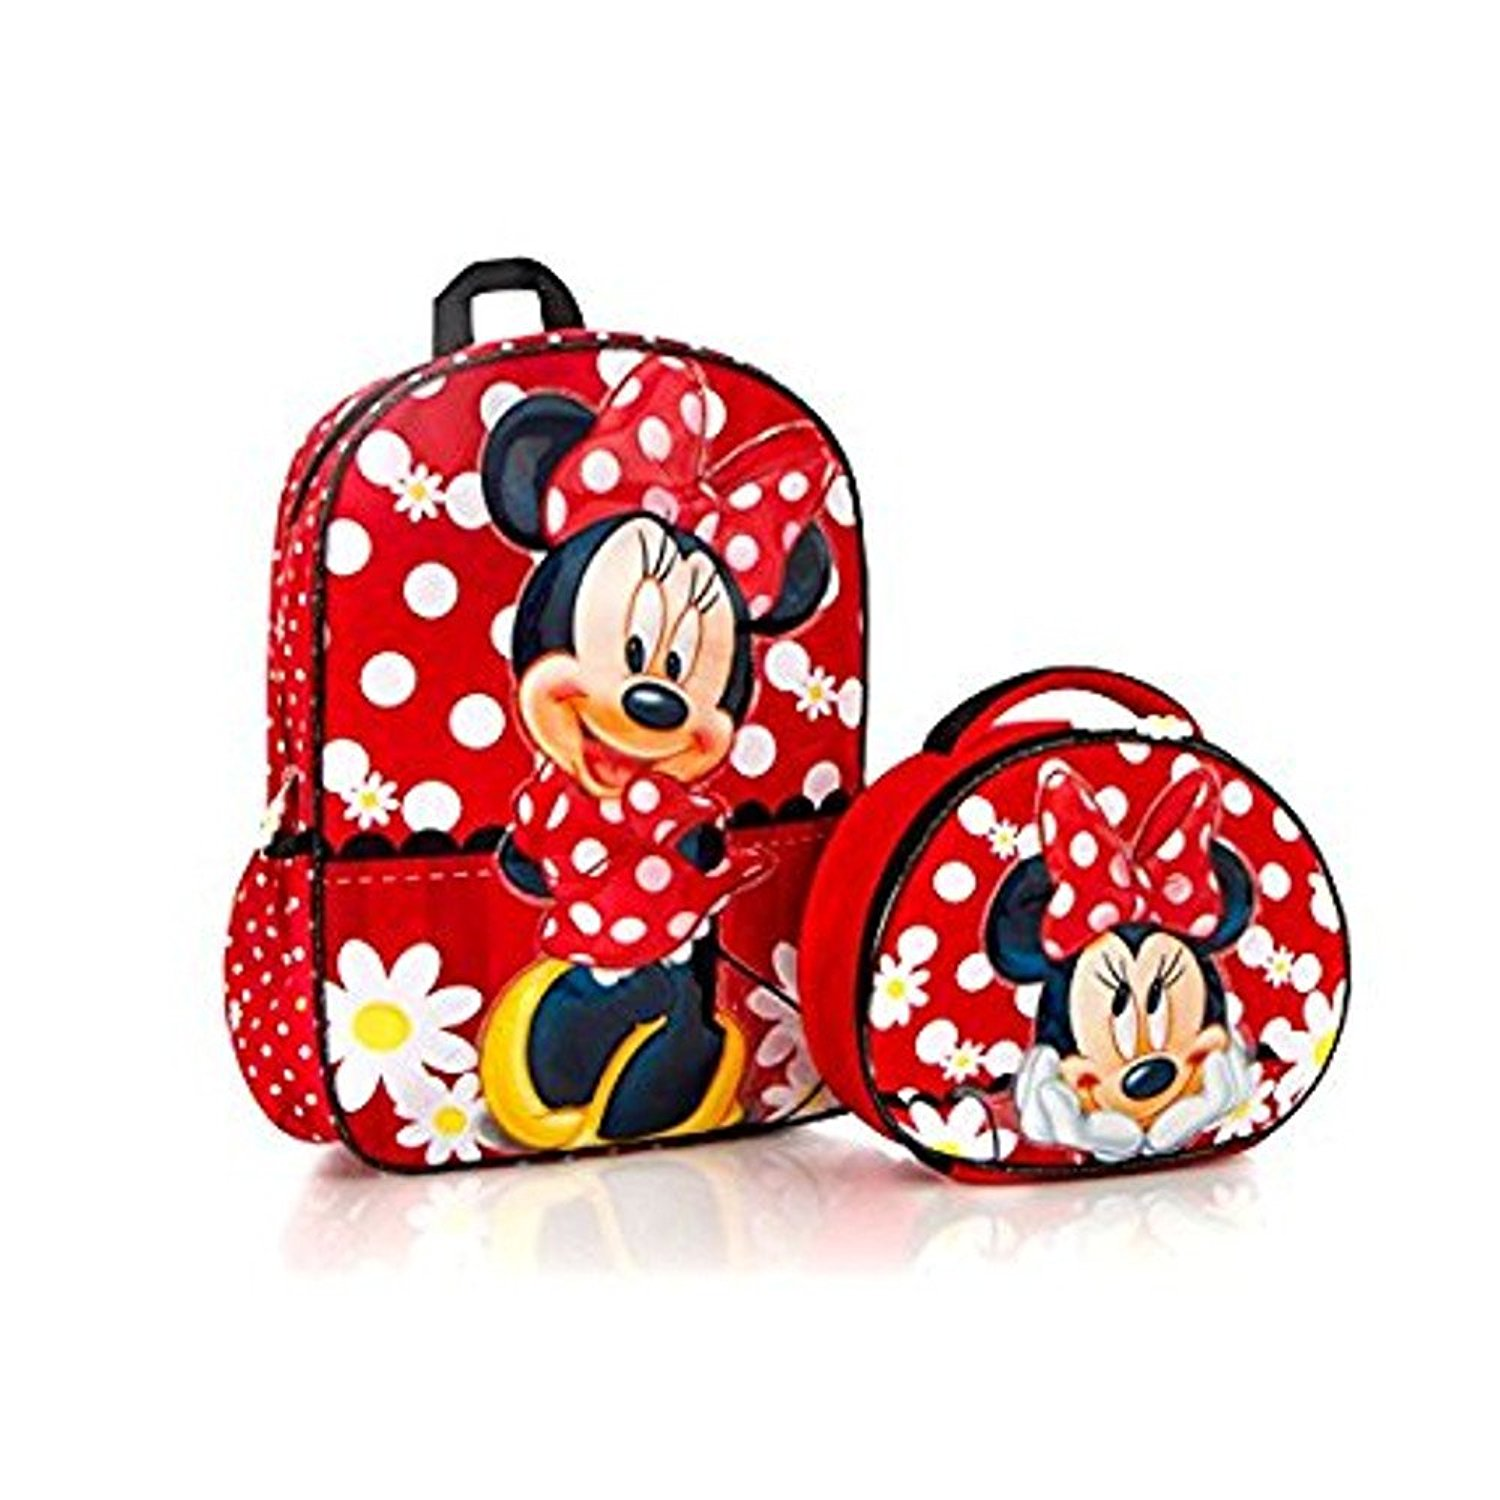 Heys Disney Minnie Mouse Kids Backpack with Lunch Bag - 15 Inch [ Red ]